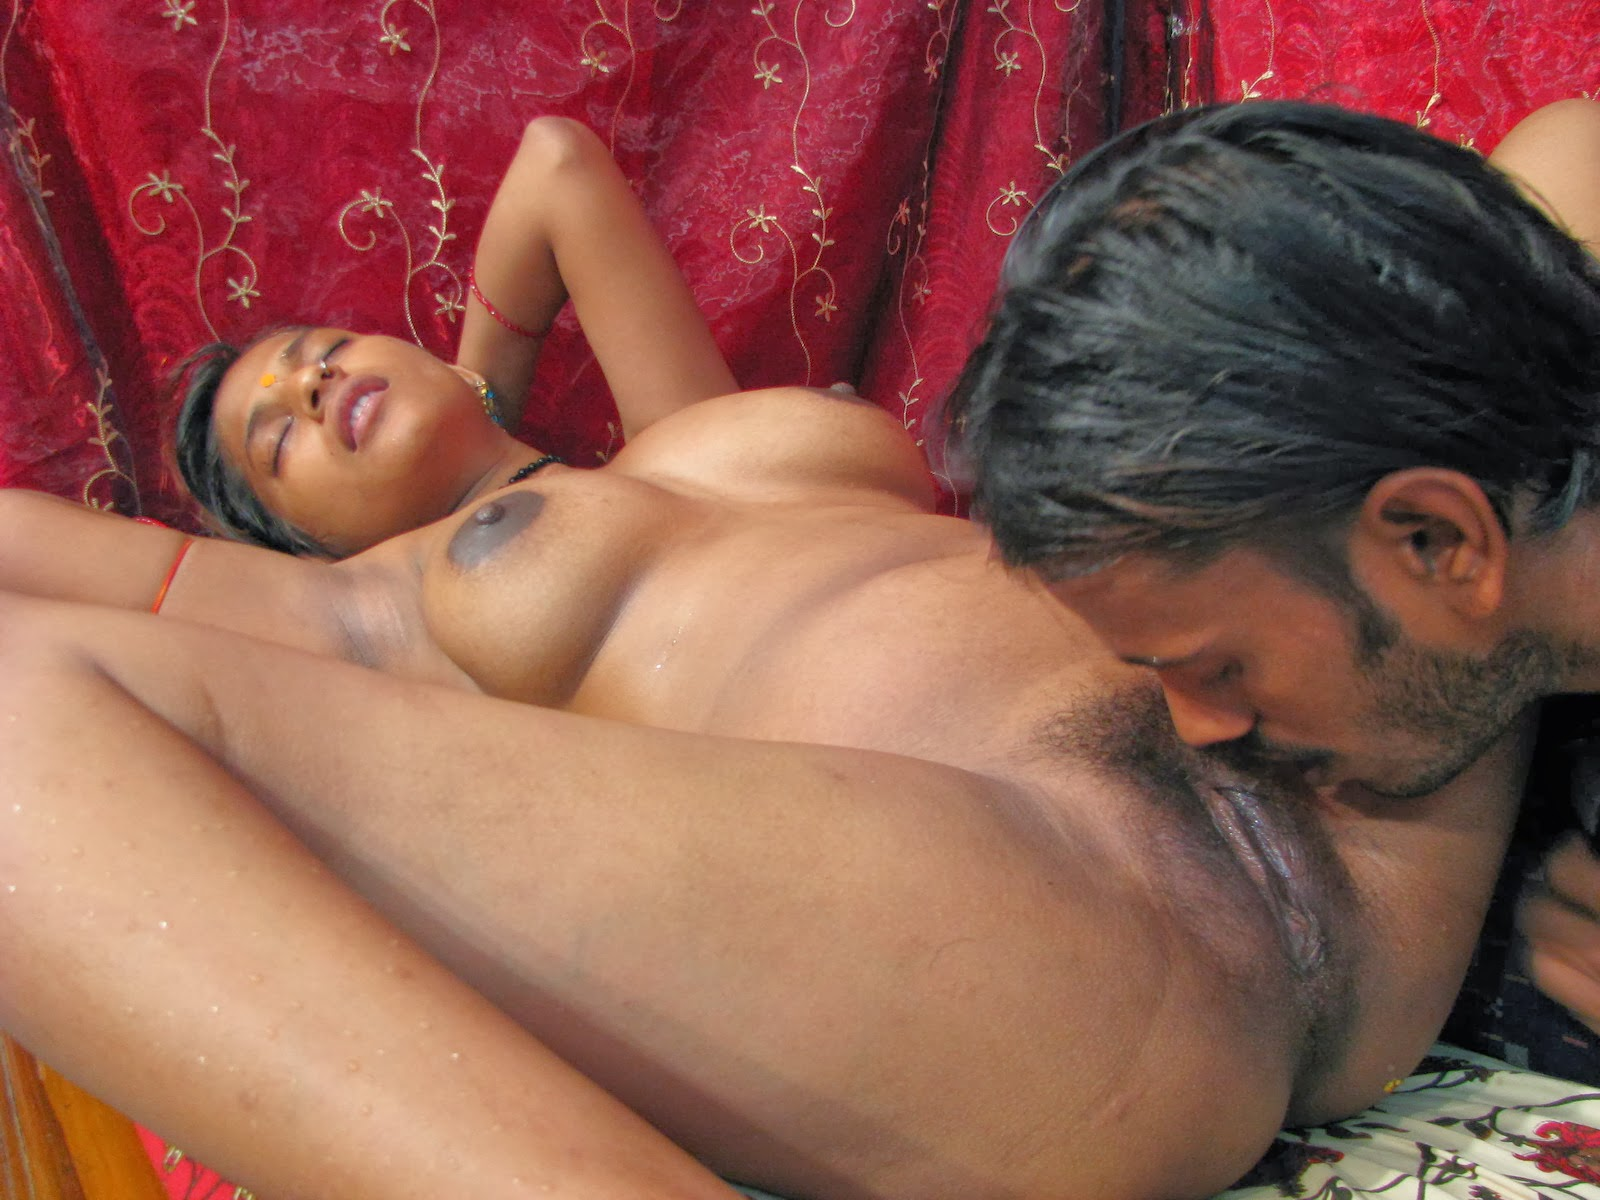 Indian Porn On Tumblr